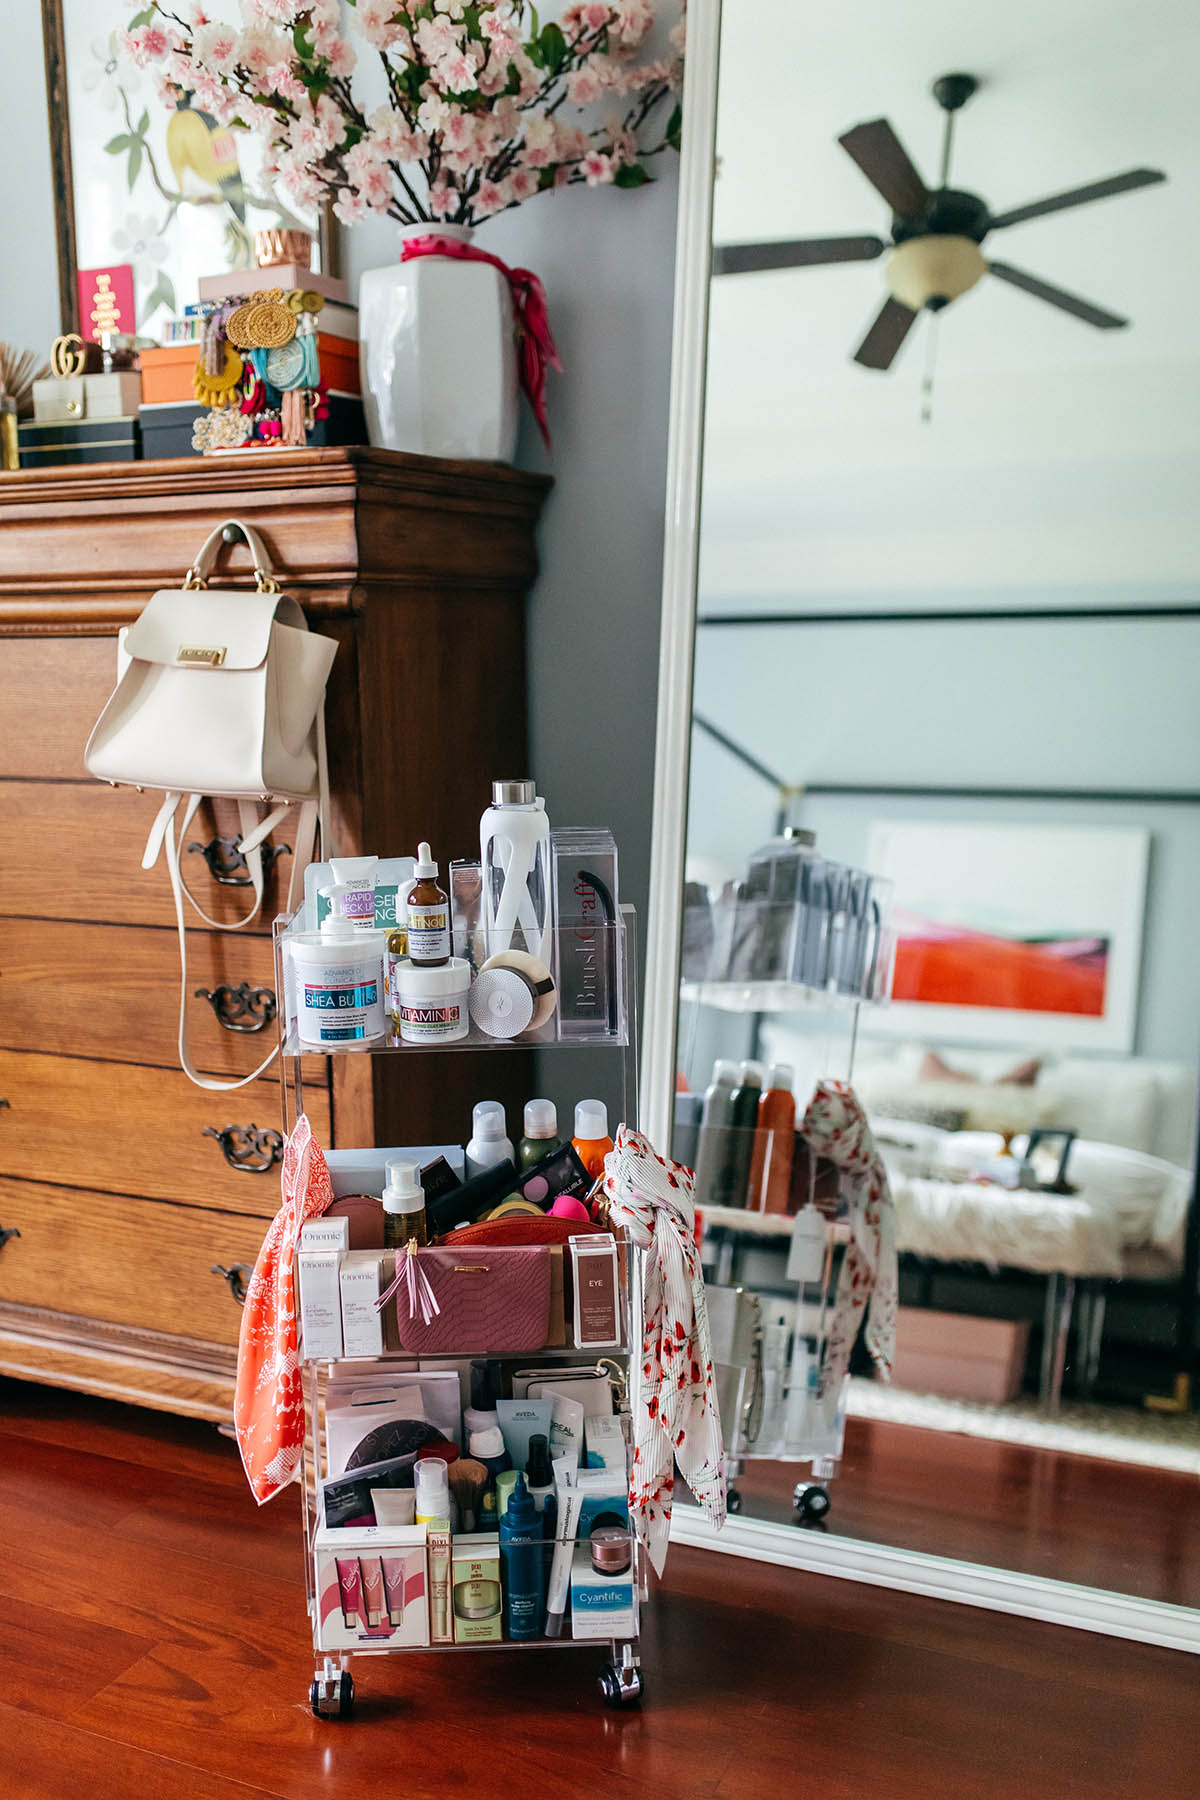 Master Bedroom Inspiration   How to Create a Space For Positivity   Pretty Bedroom Organization